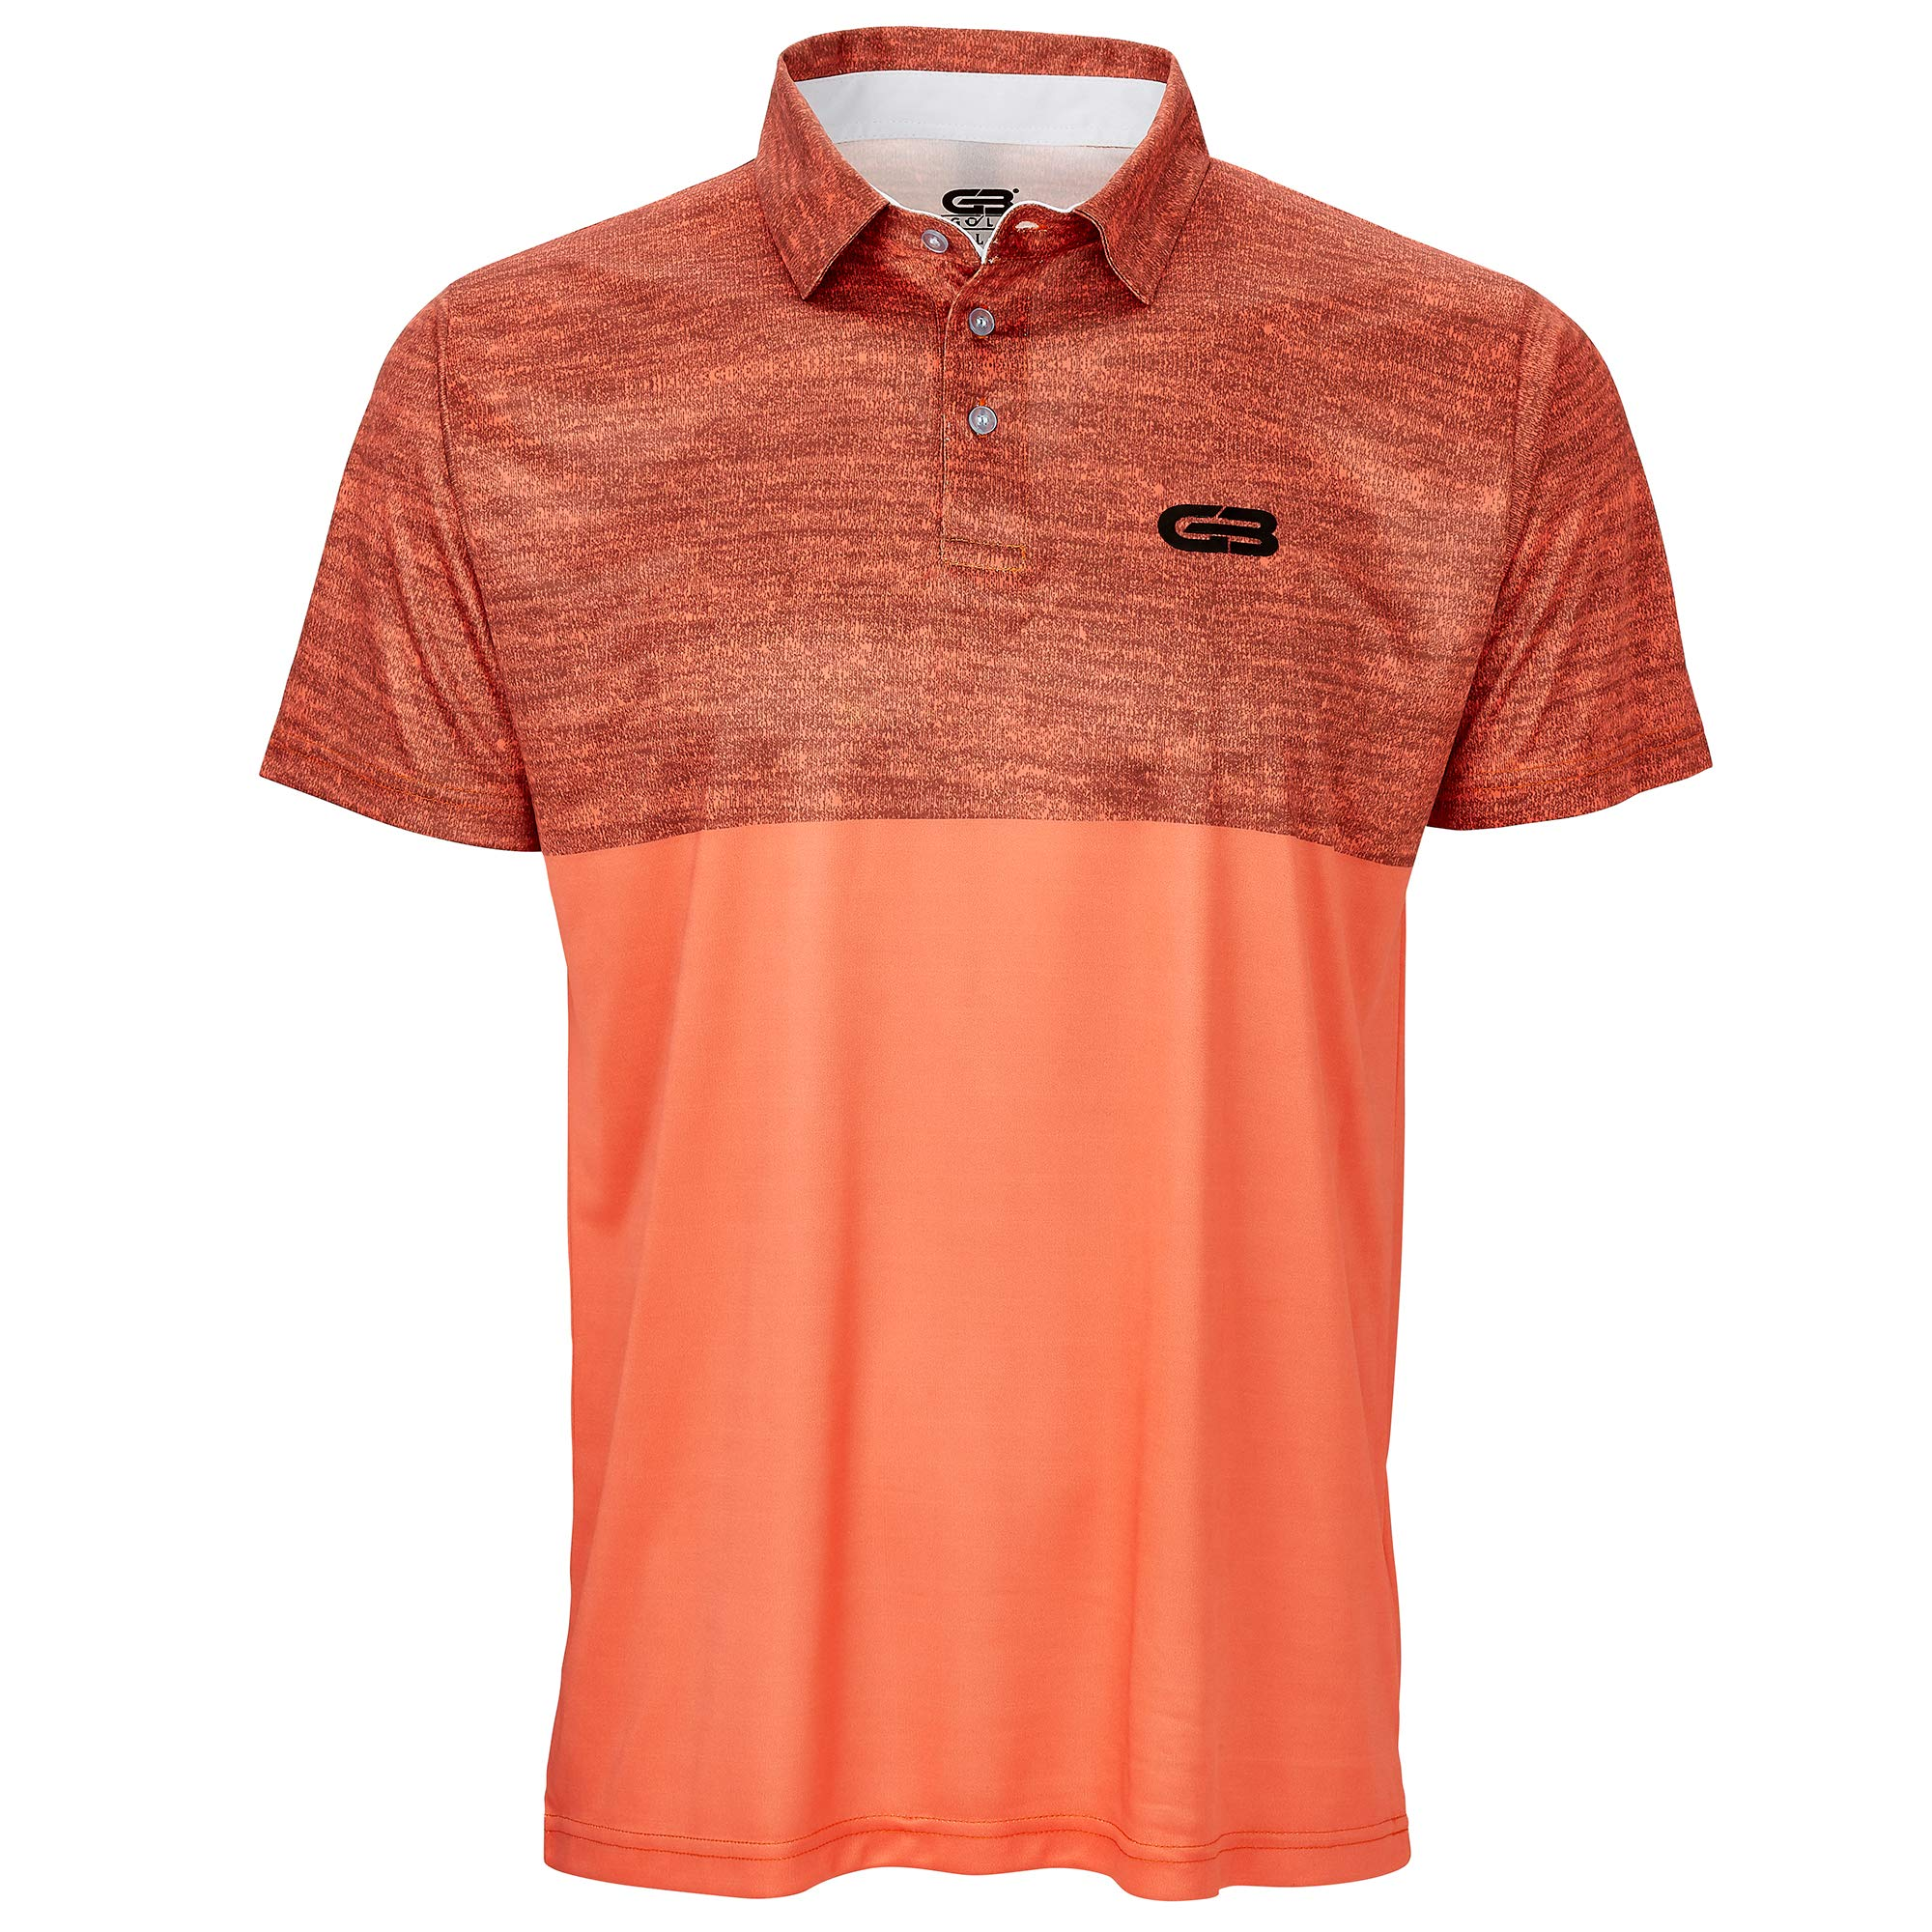 ac6cdaf6ad771 Best Rated in Men's Golf Shirts & Helpful Customer Reviews - Amazon.com